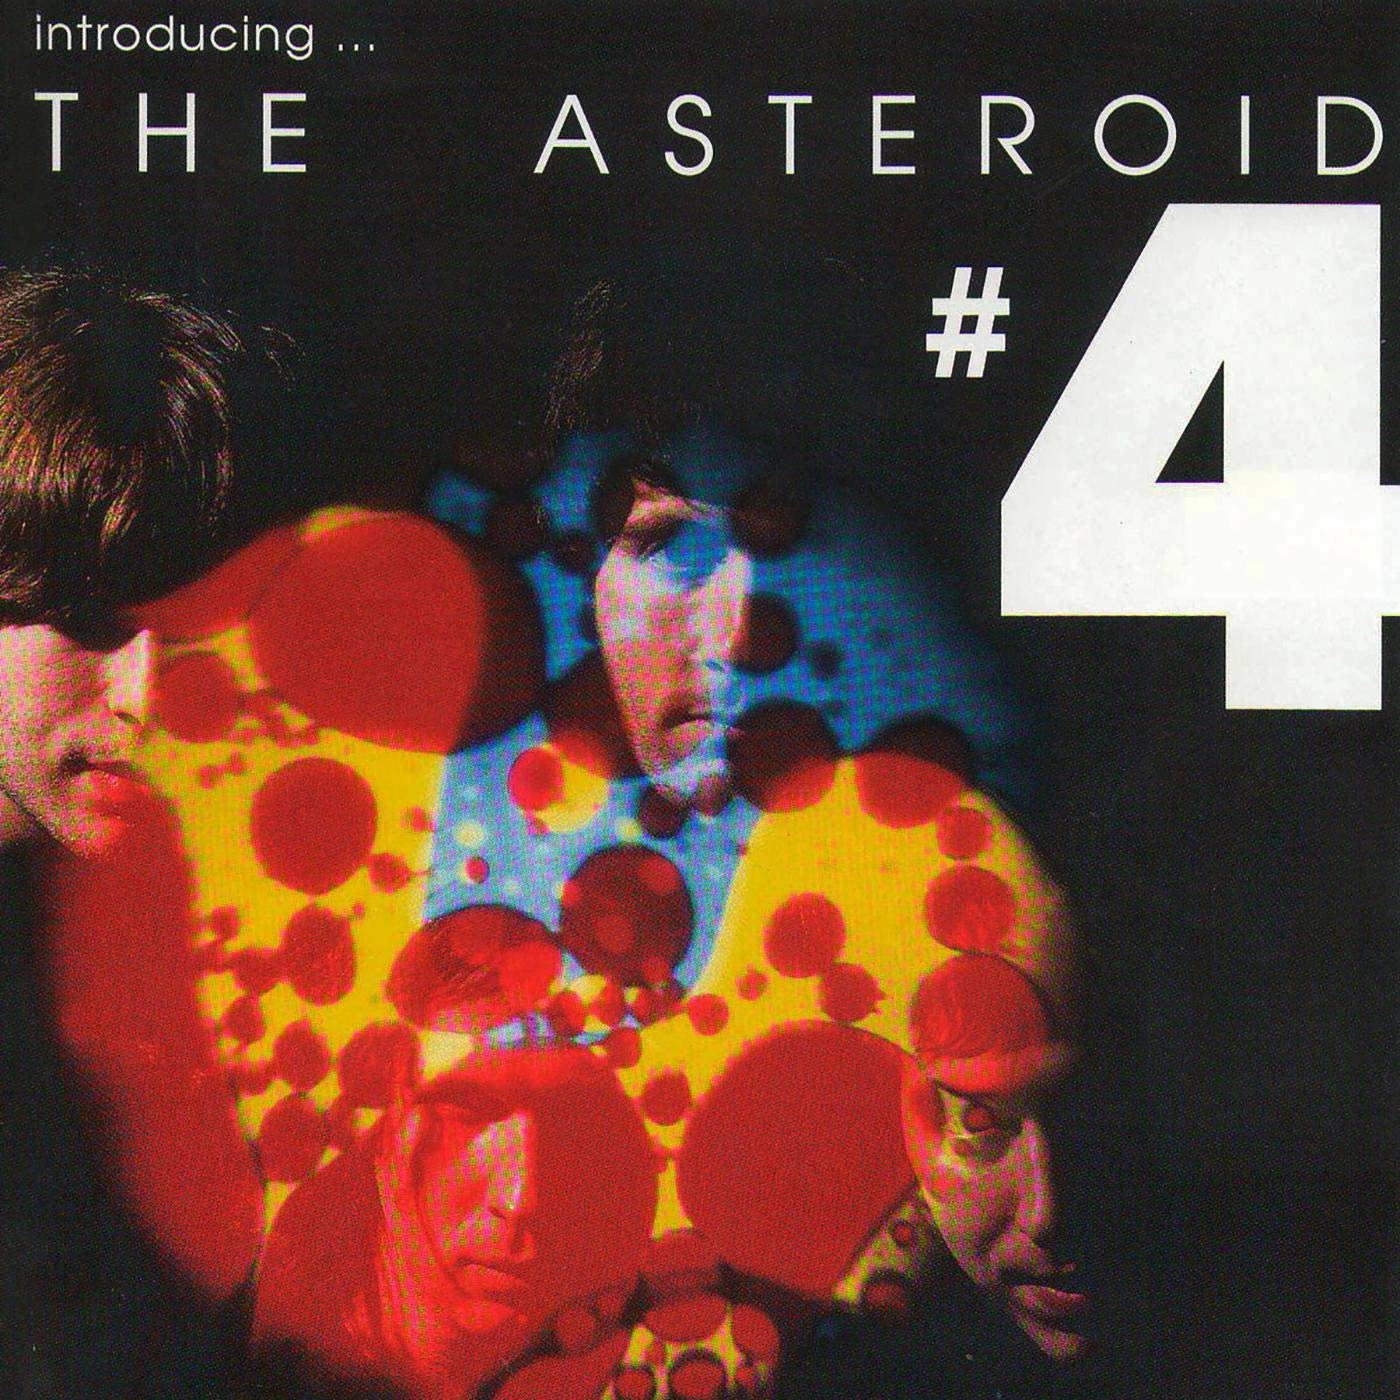 Cassette : Asteroid #4 - Introducing... (Cassette)